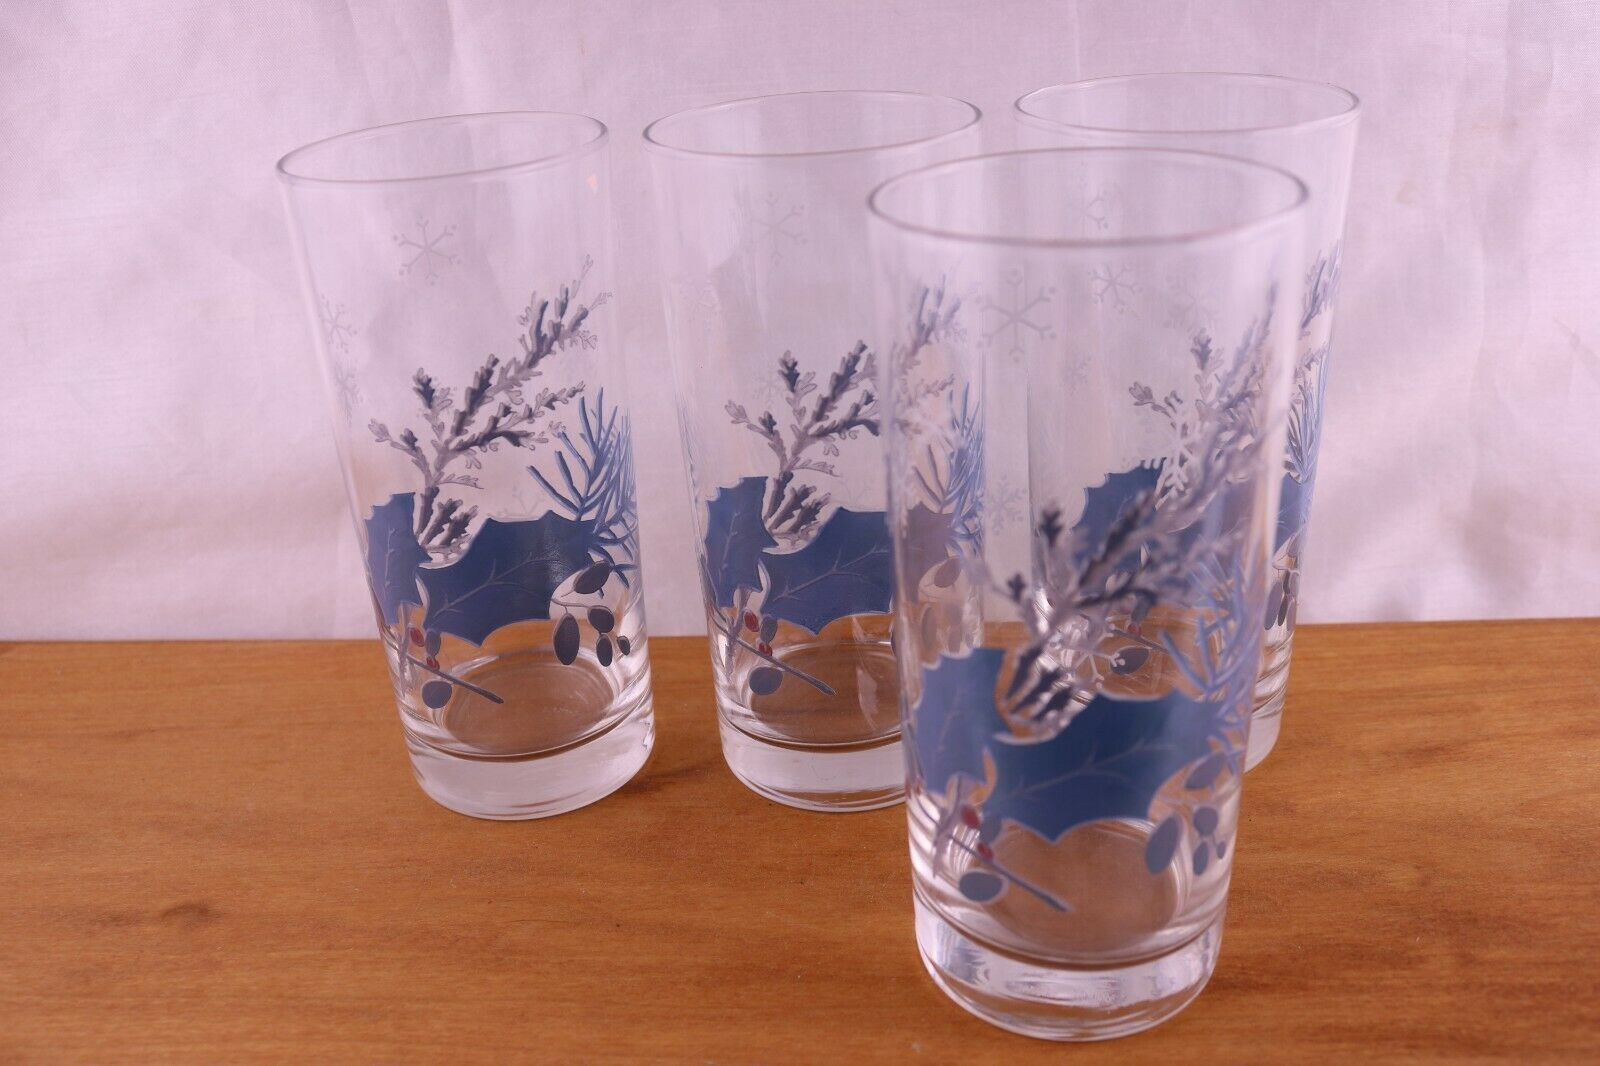 bluee White Snowflakes Glass 4 Coolers Glasses Tumblers Slate bluee Holly Leaves